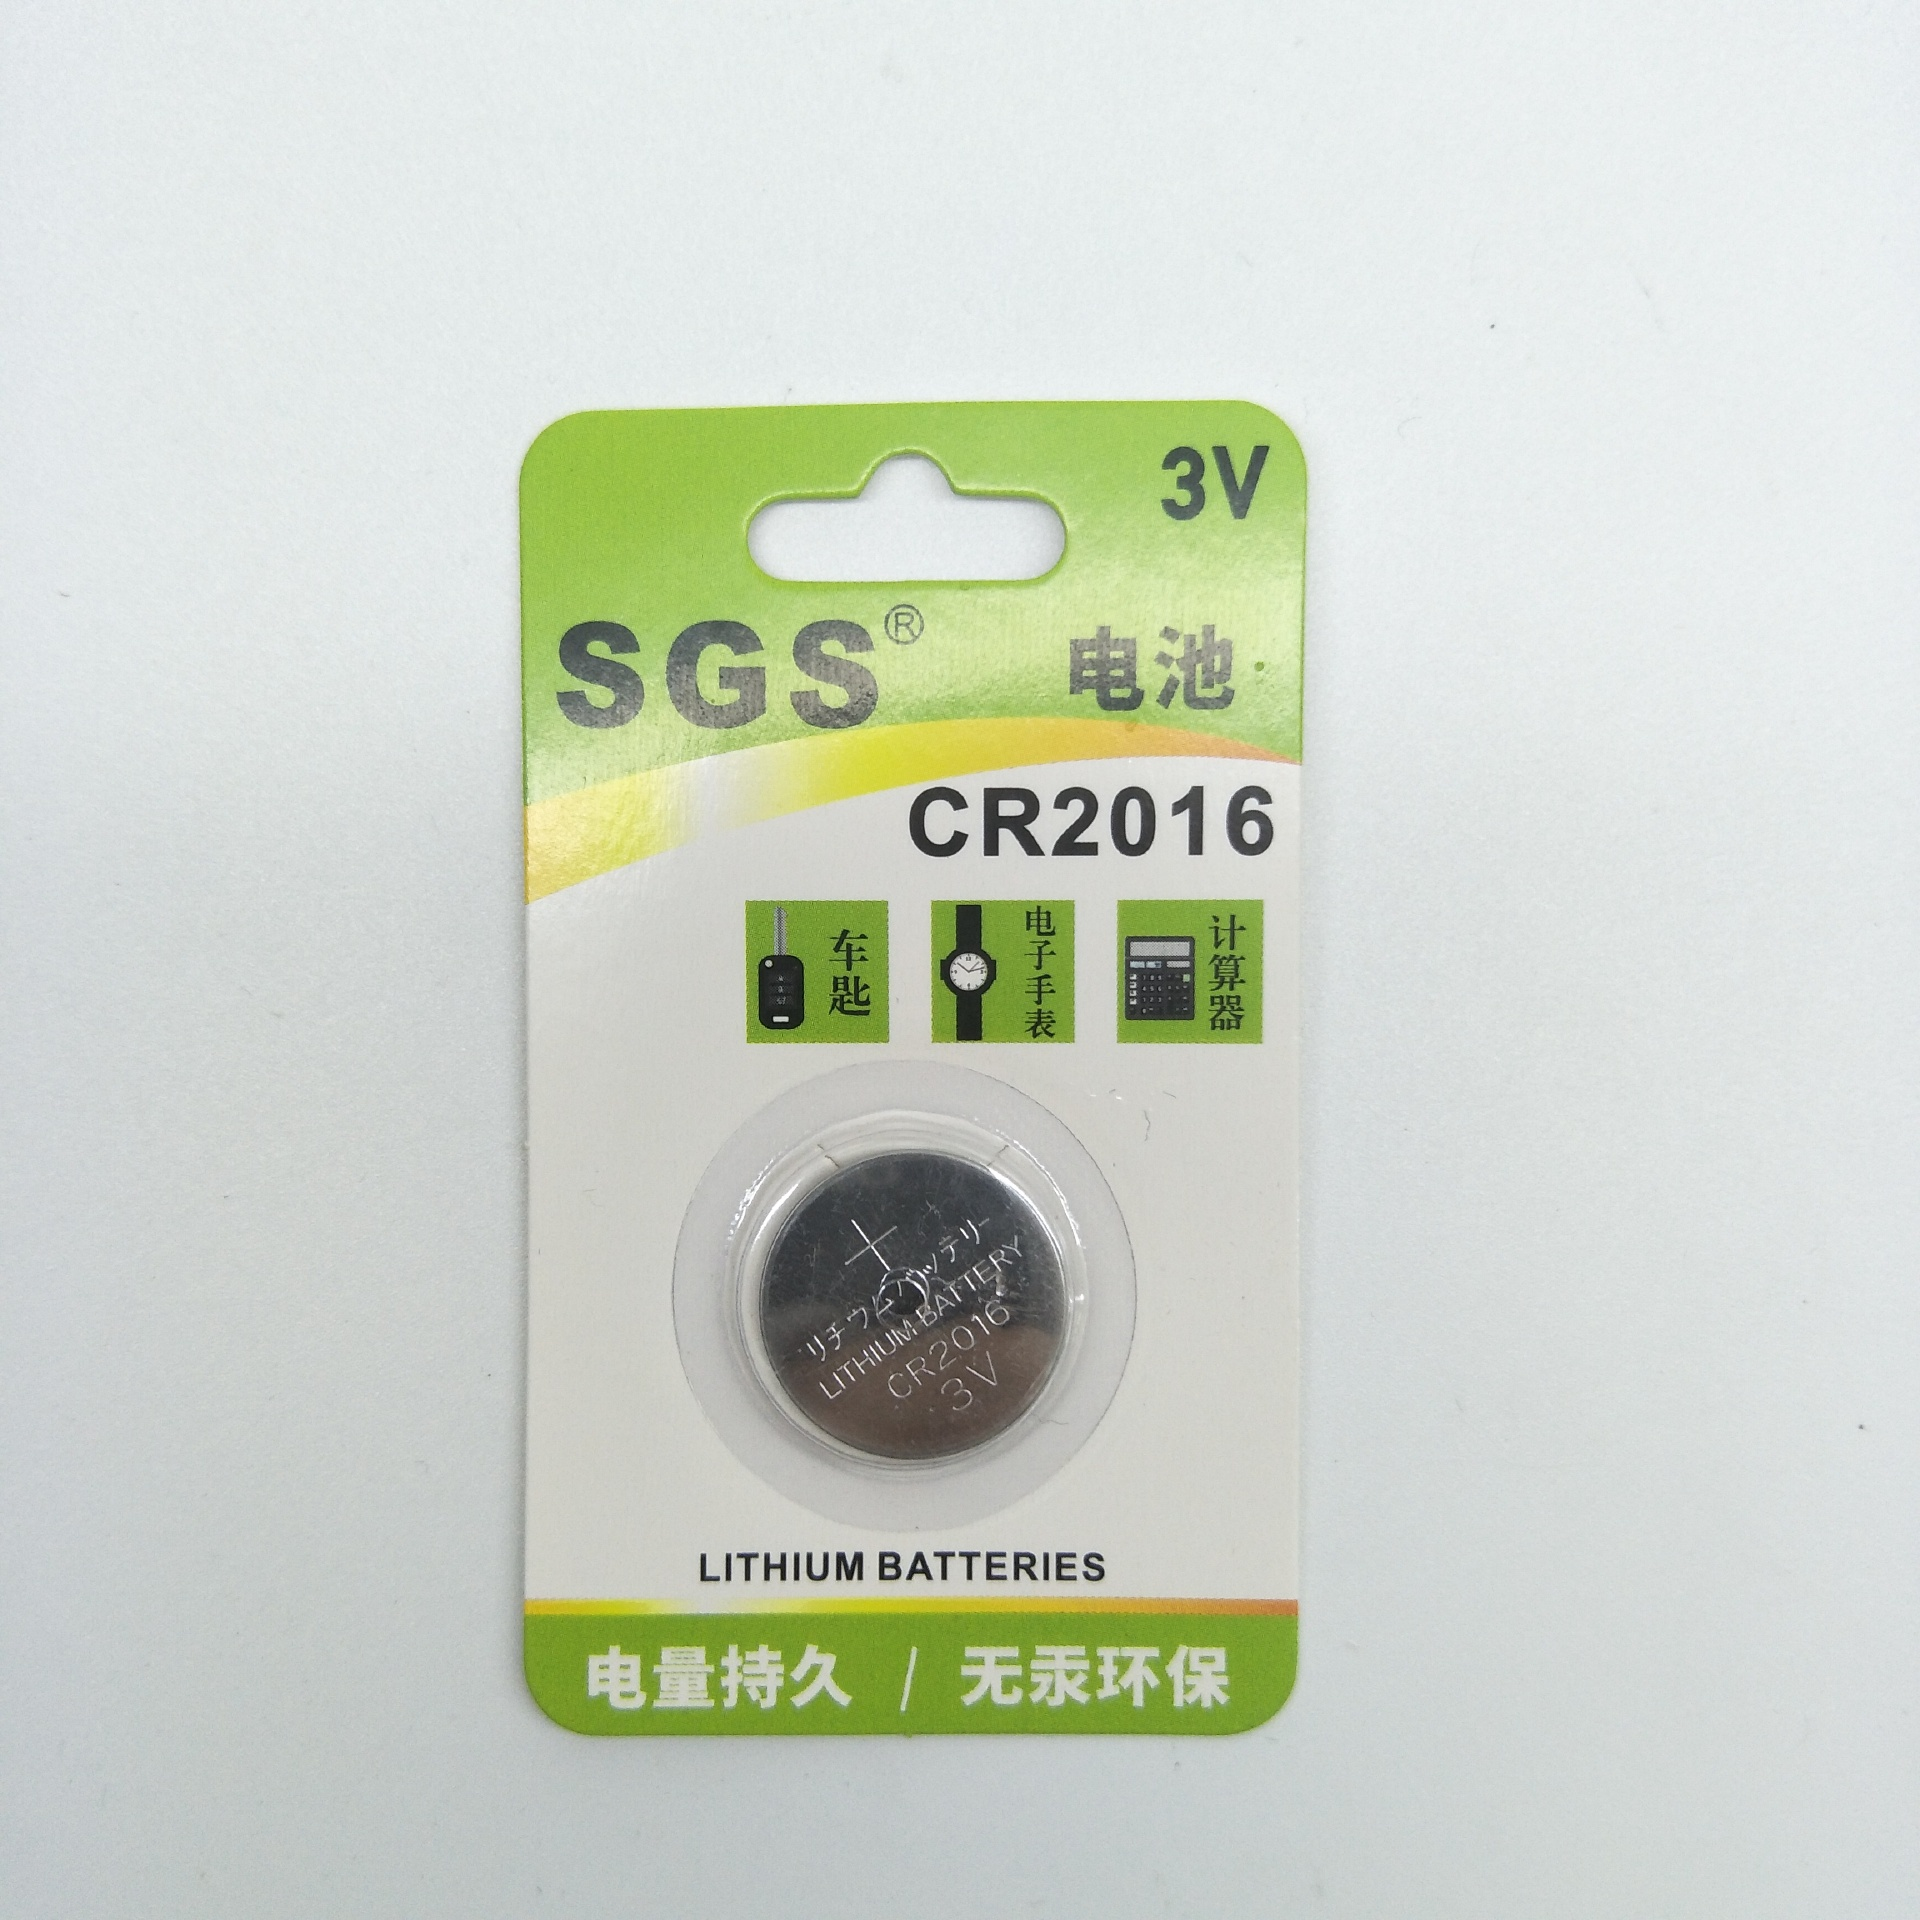 SGS lithium battery CR2016